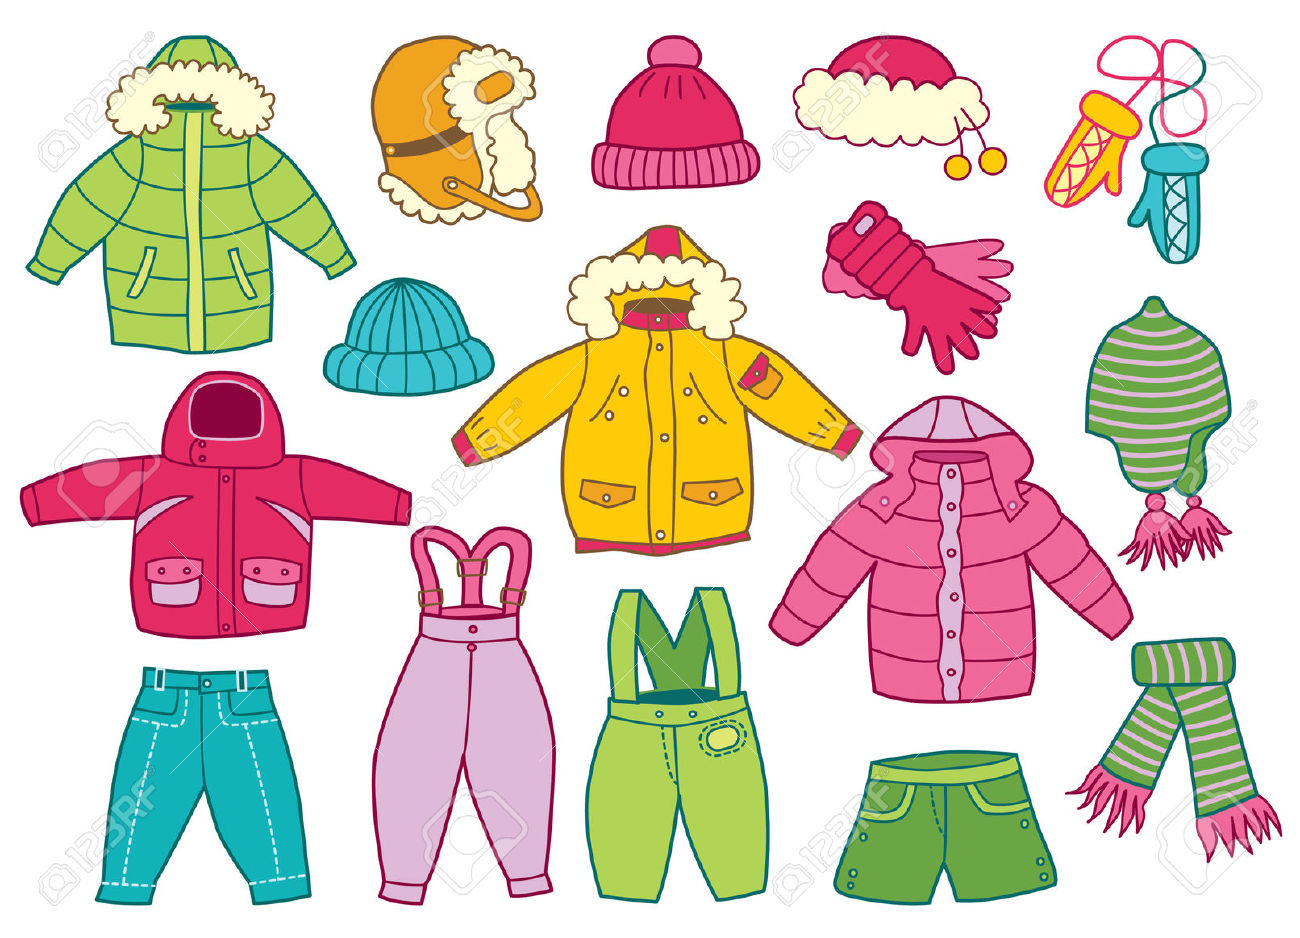 Winter Clothing ... Dfab85a41be413d26144-Winter Clothing ... dfab85a41be413d261441659671bf9 .-15